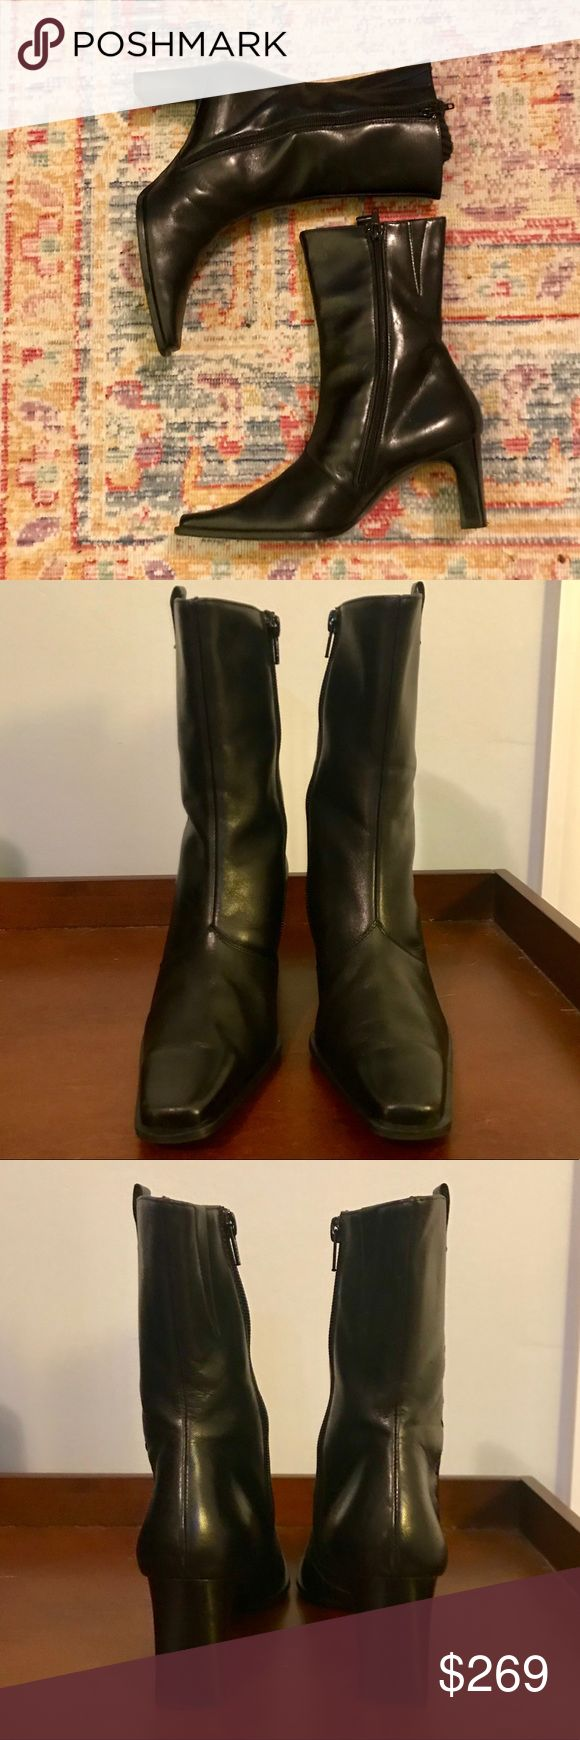 Paul Green Leather Boots 🖤 Paul Green Leather Boots 2 1/2 US Size 5 Like Brand New!  Perfect with dress pants.  Class up your look this winter with these gorgeously soft Paul Green leather boots. A great investment for a closet staple! Paul Green Shoes Heeled Boots